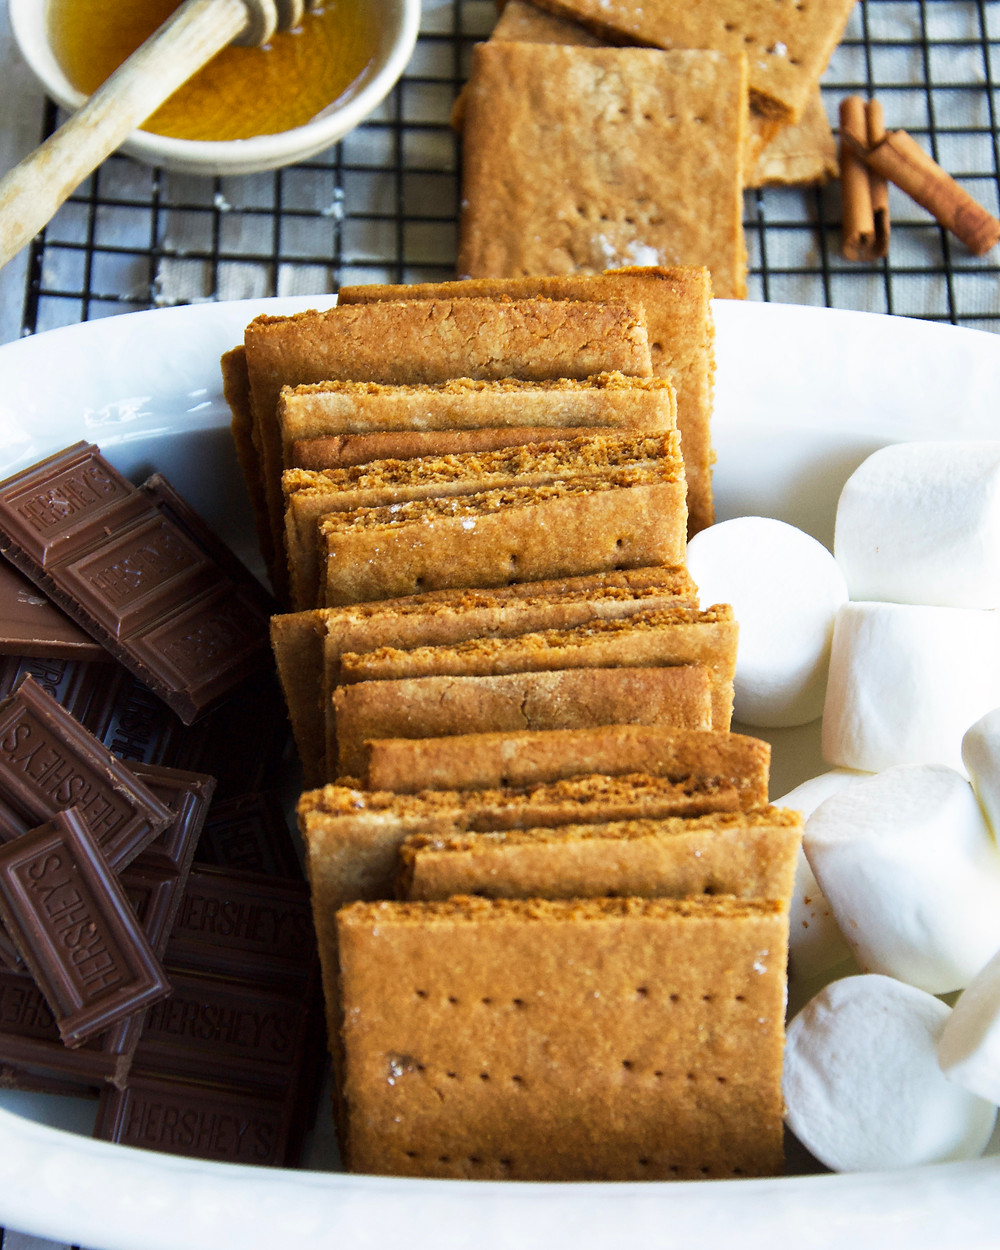 Ready for s'mores with homemade Graham Crackers, chocolate and marshmallows